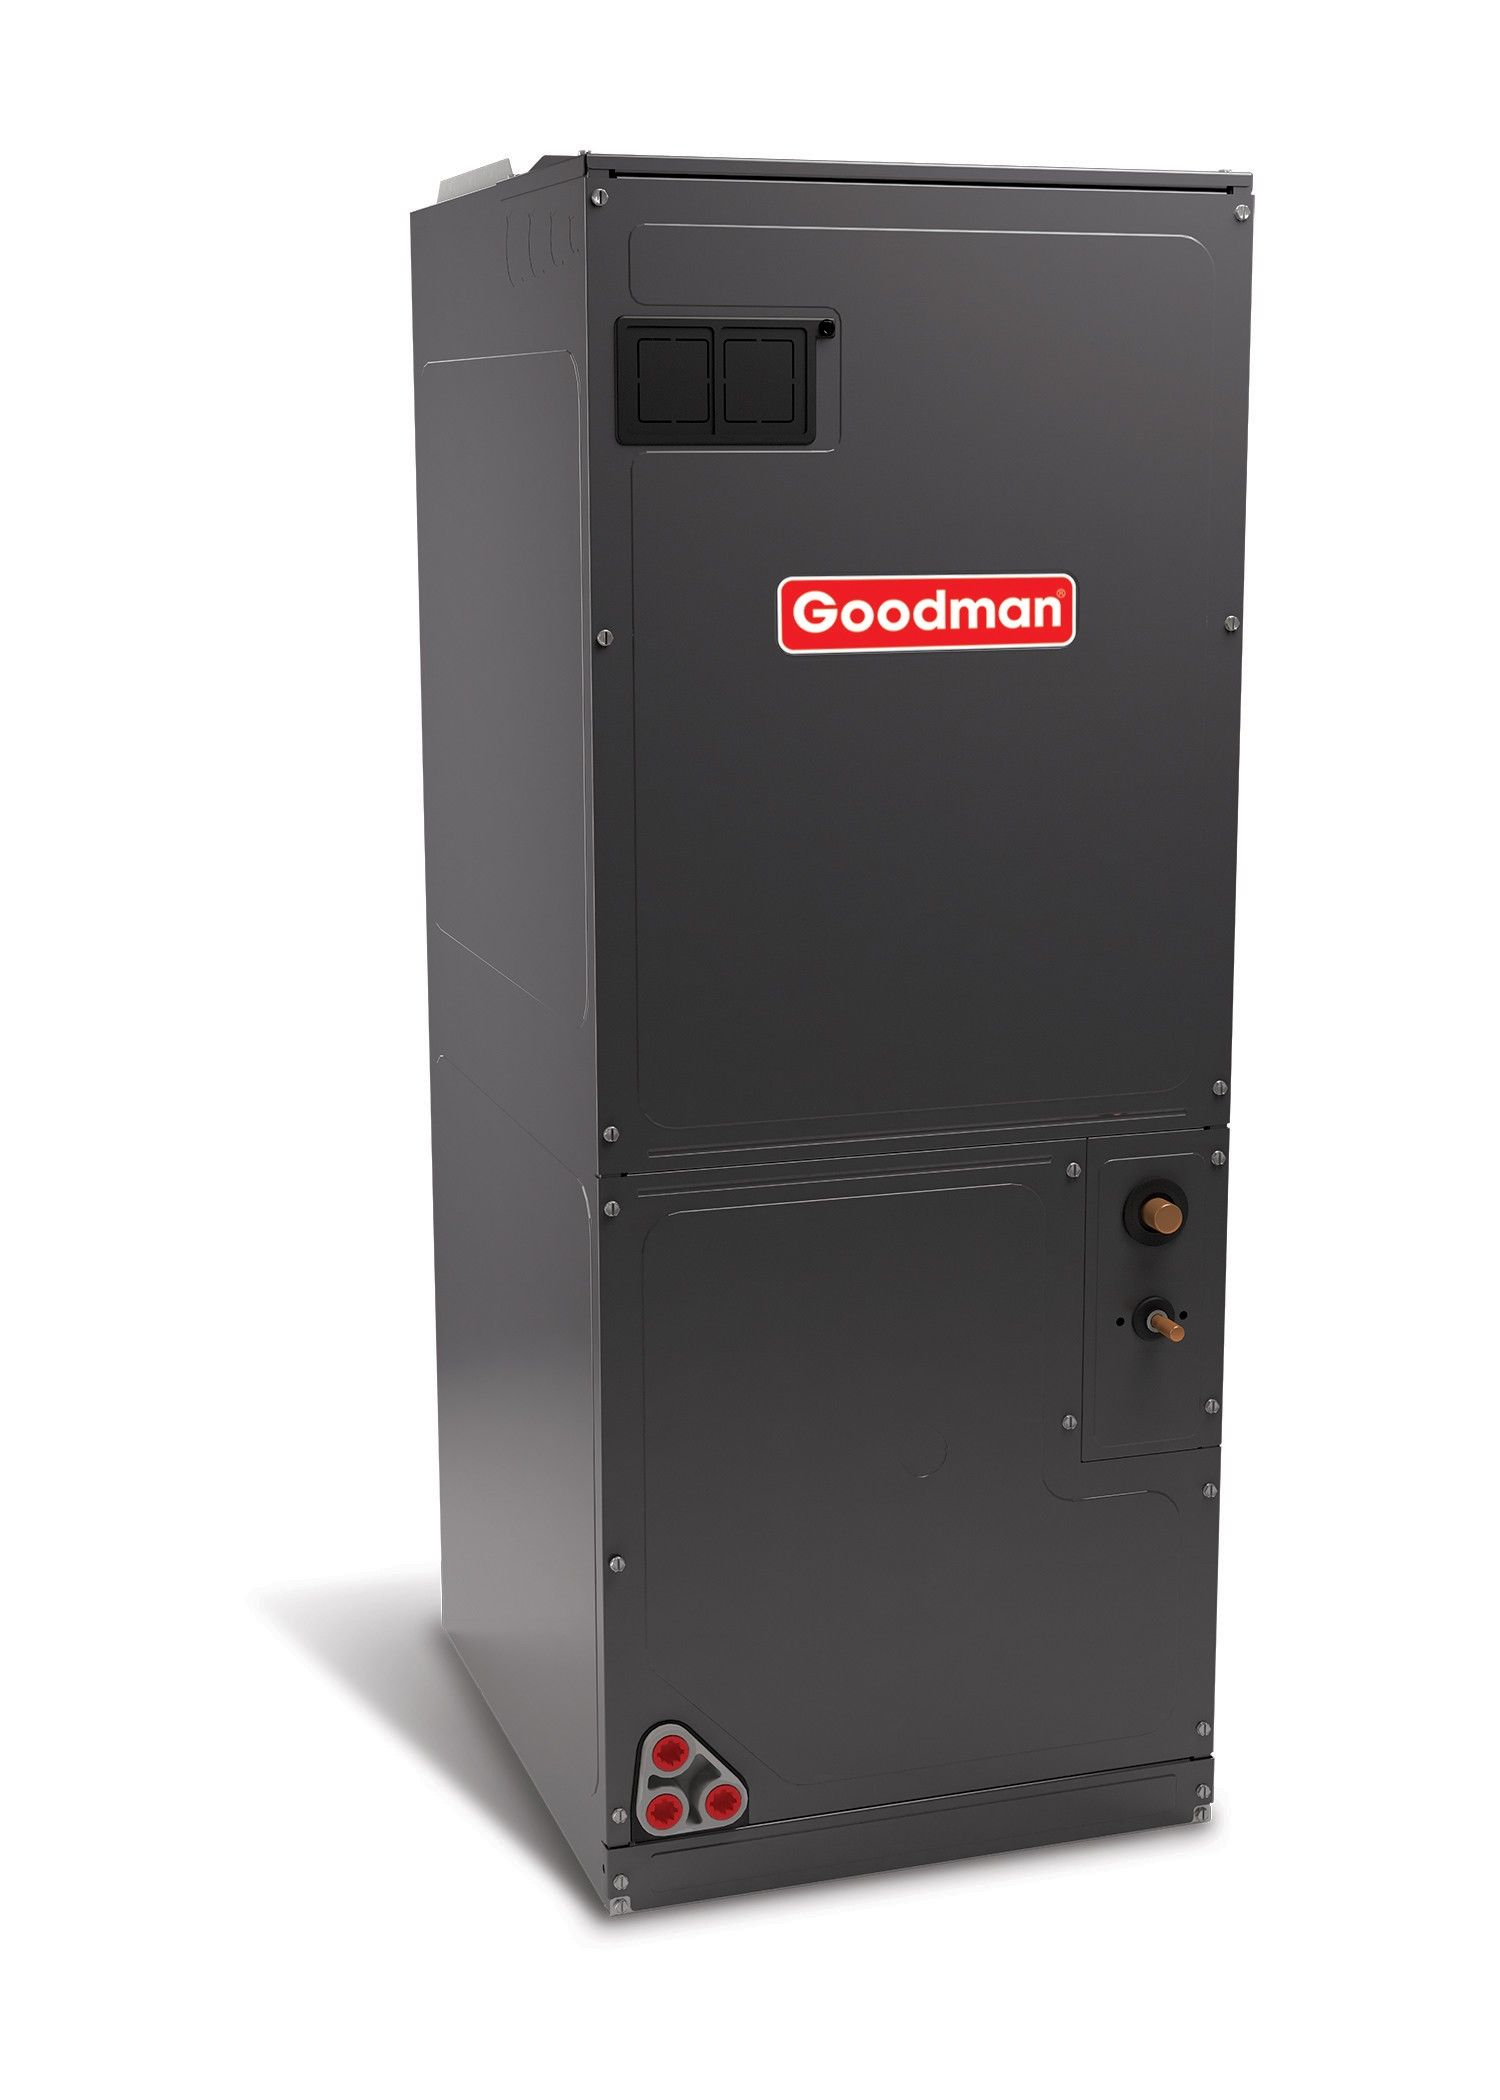 3 0 Ton Goodman Avptc Variable Speed Air Handler Air